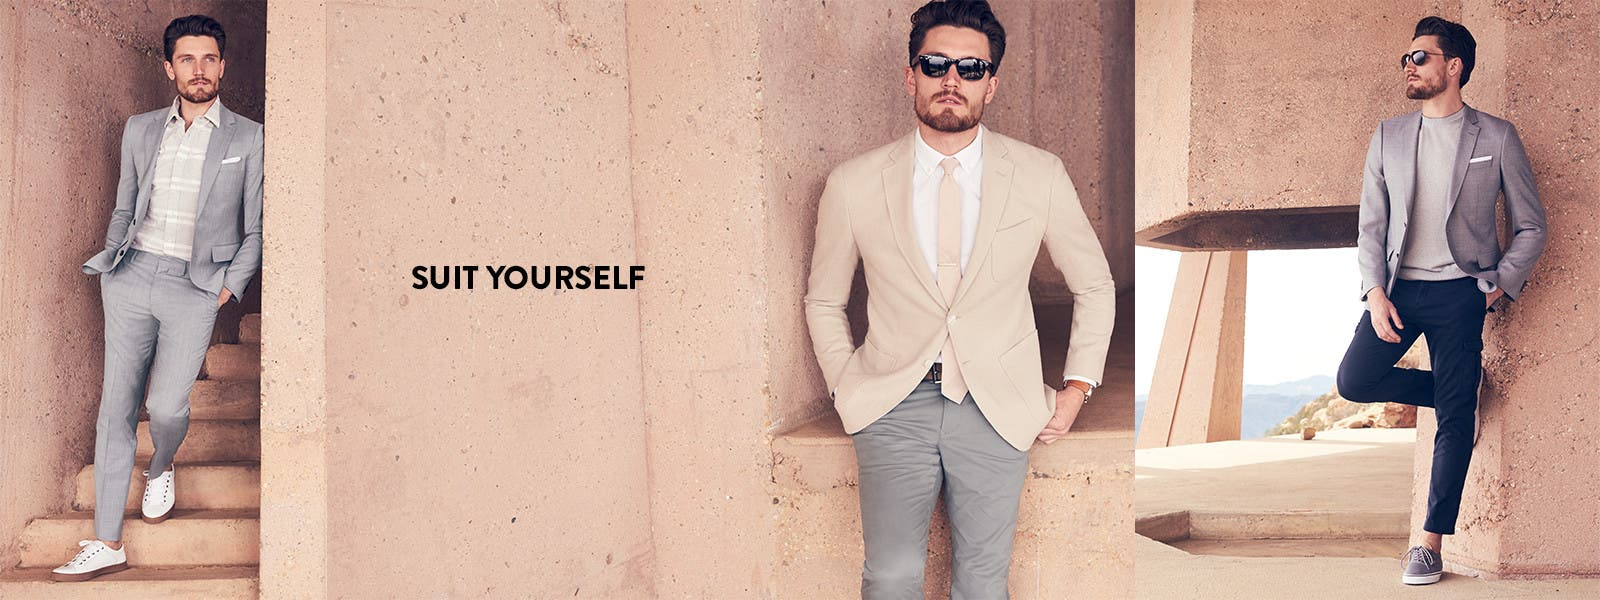 Suit yourself: suits and separates for men.